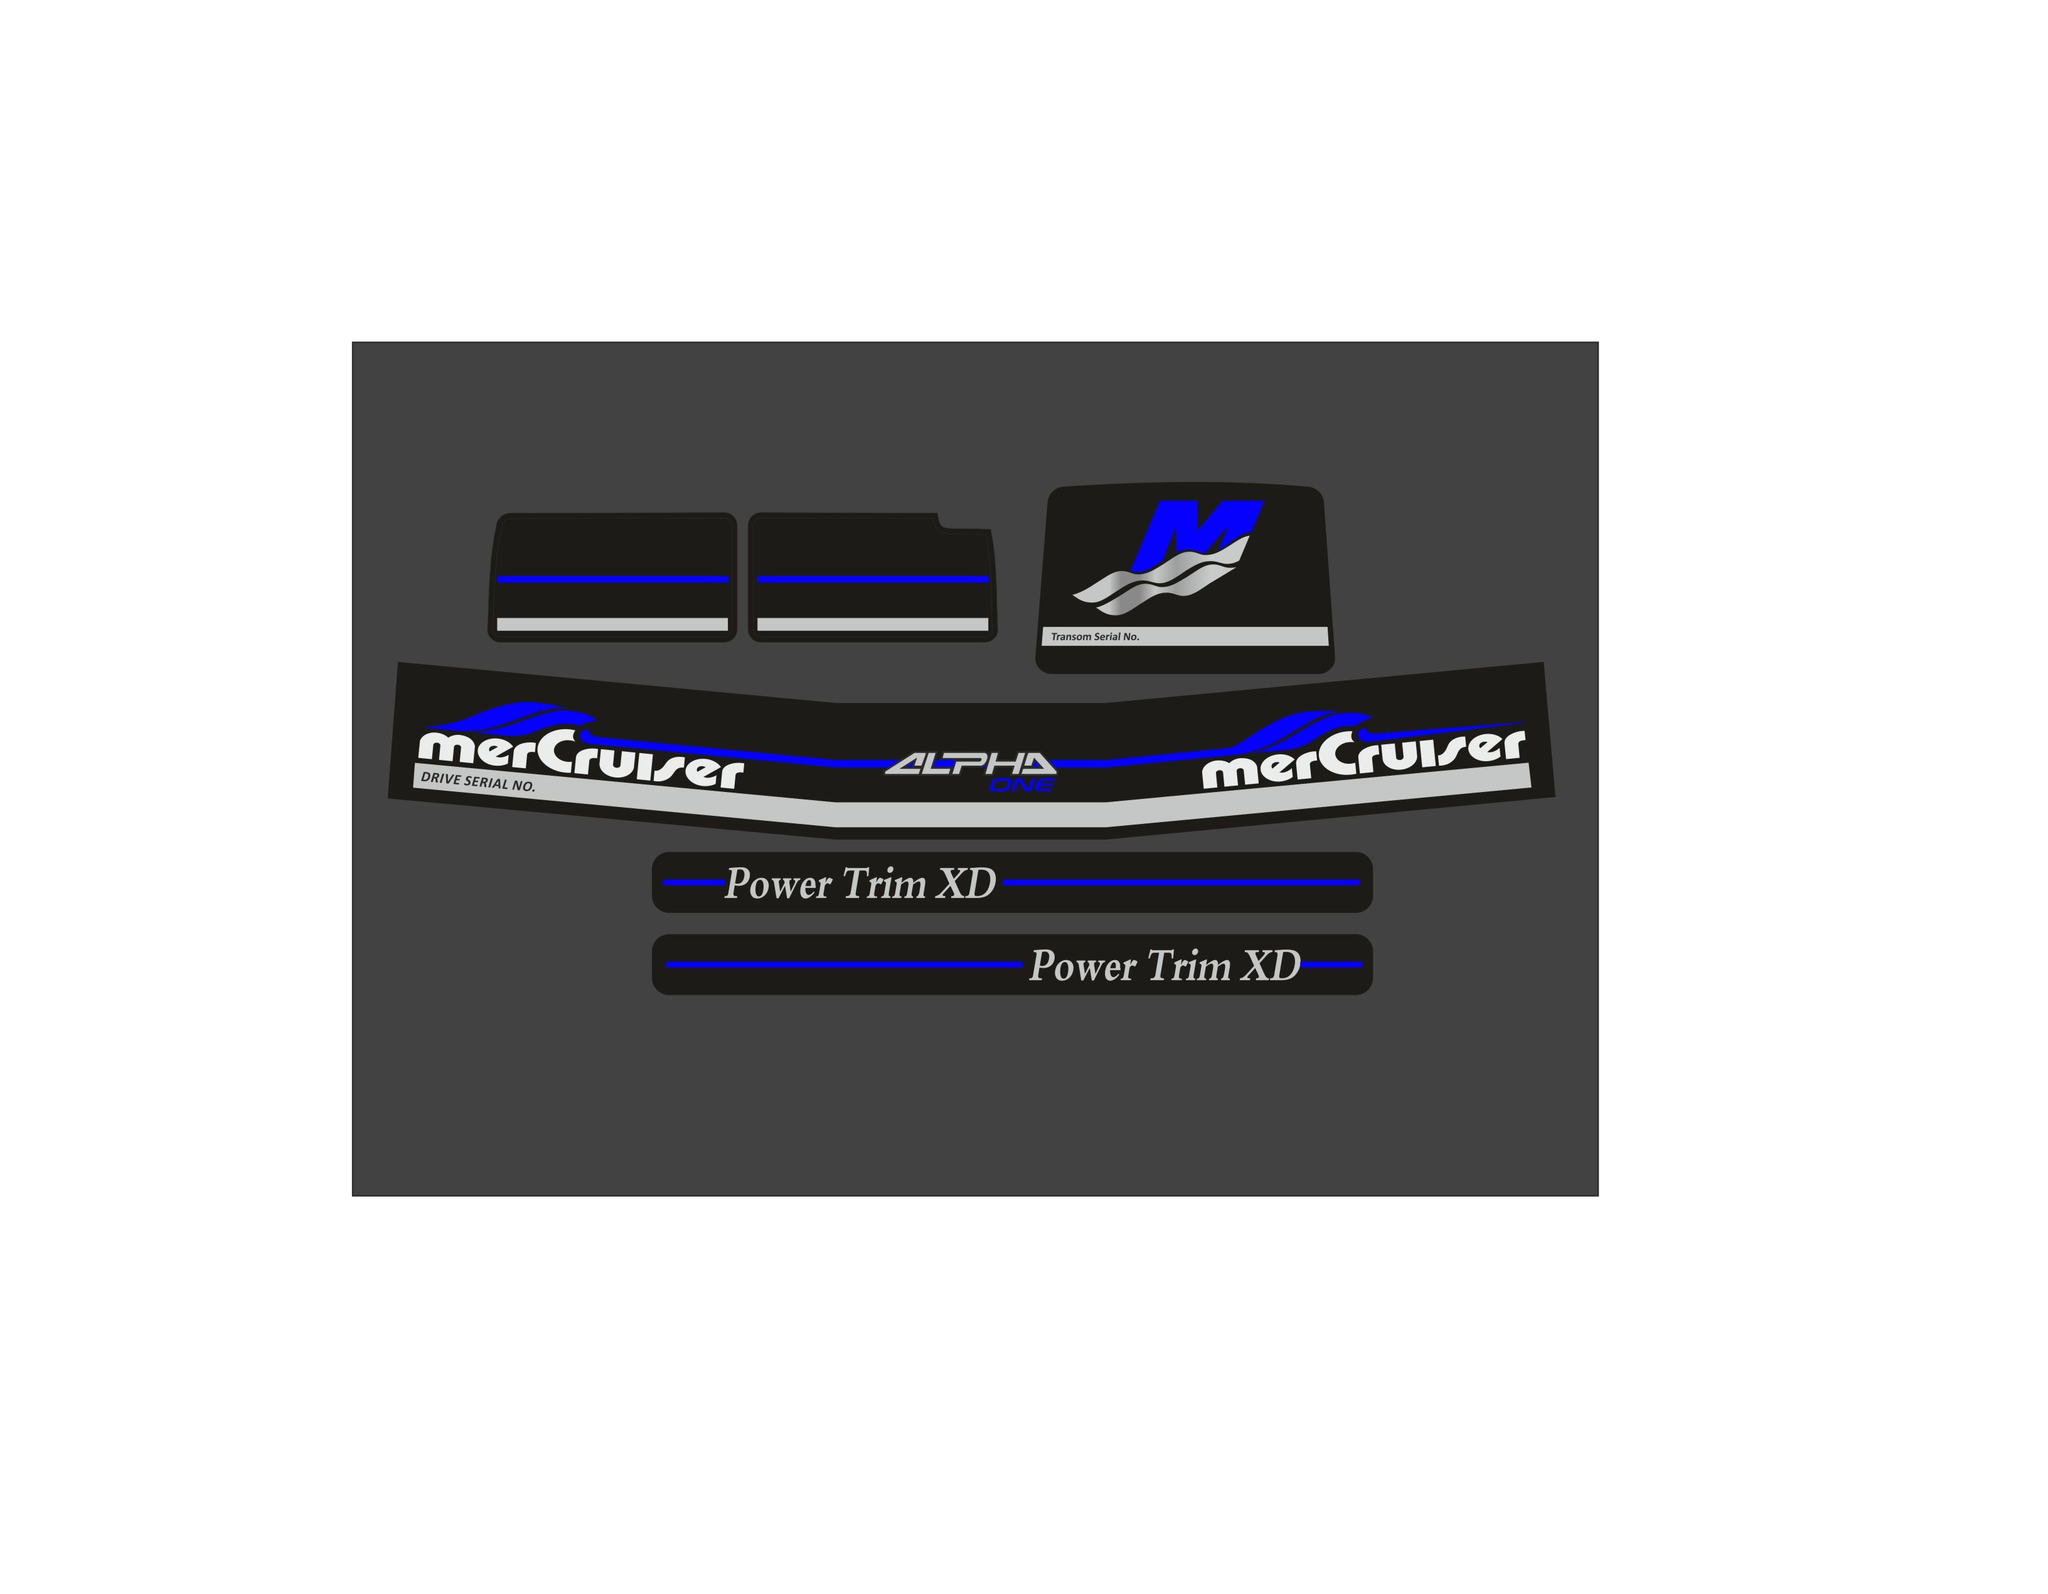 Mercury MerCruiser Alpha 1 gen 2 blauw Sticker set